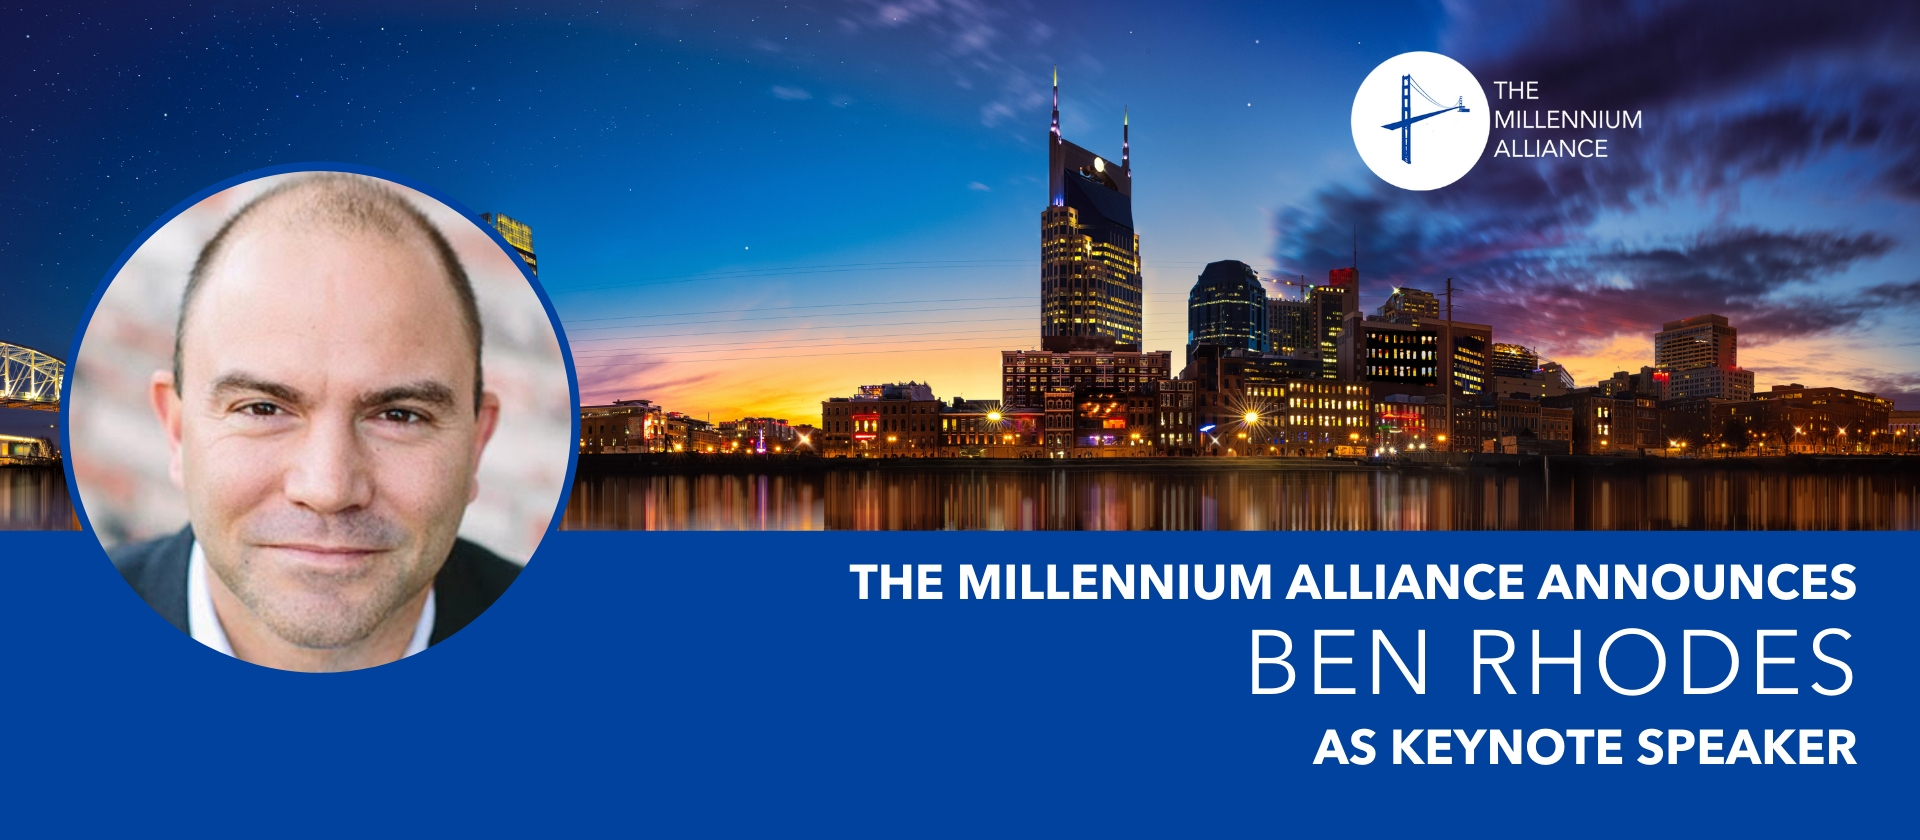 Ben Rhodes Keynote Speaker Announcement Millennium Alliance